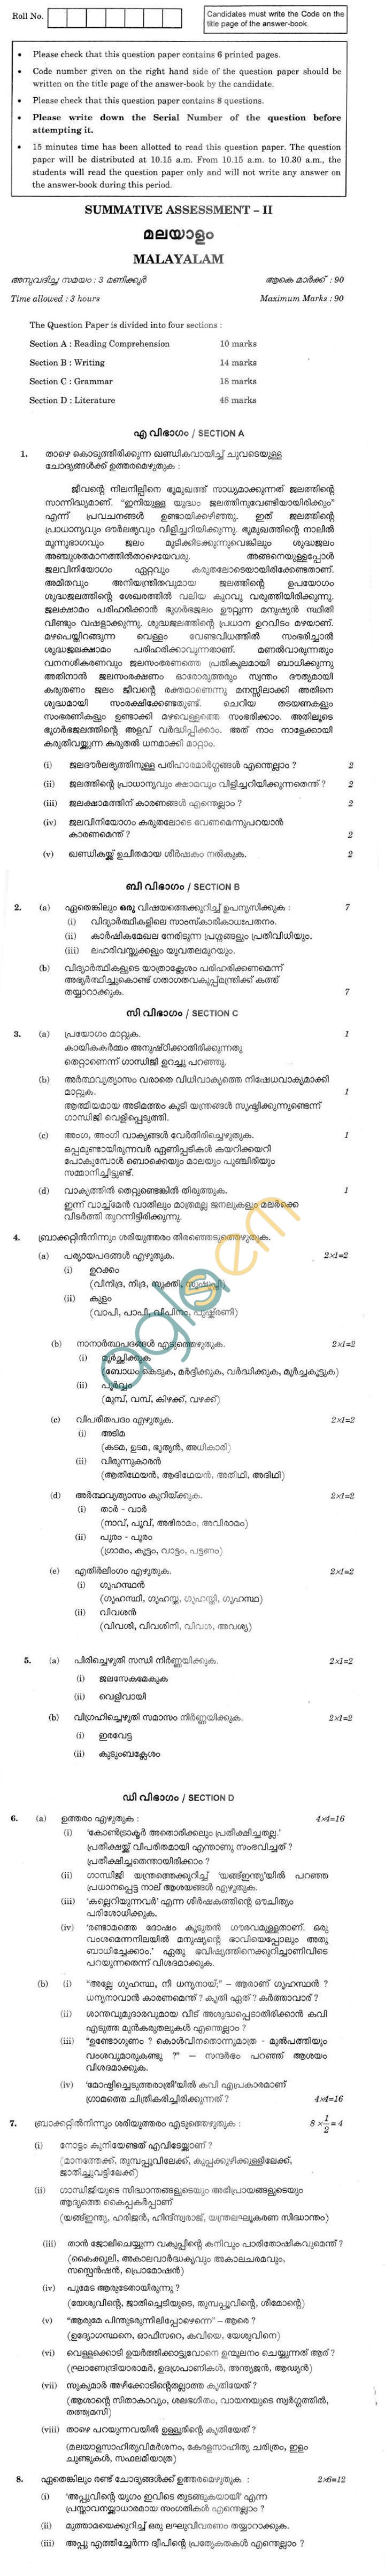 CBSE Compartment Exam 2013 Class X Question Paper - Malayalam